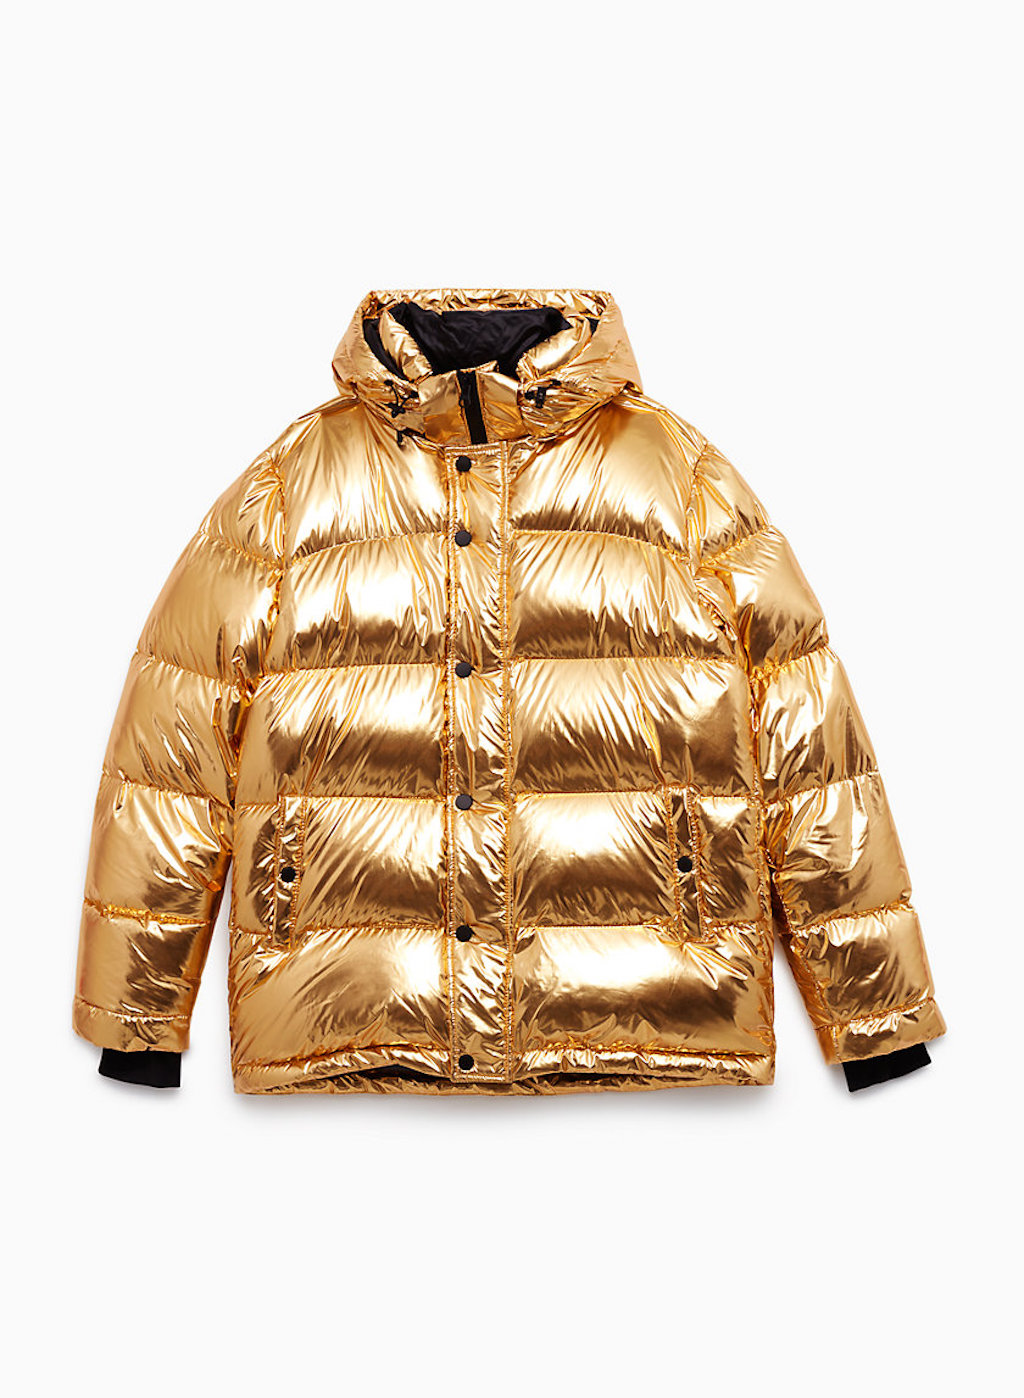 I'm not sure this Gold Puffer jacket of my dreams needs any explanation.  - Shop it here.